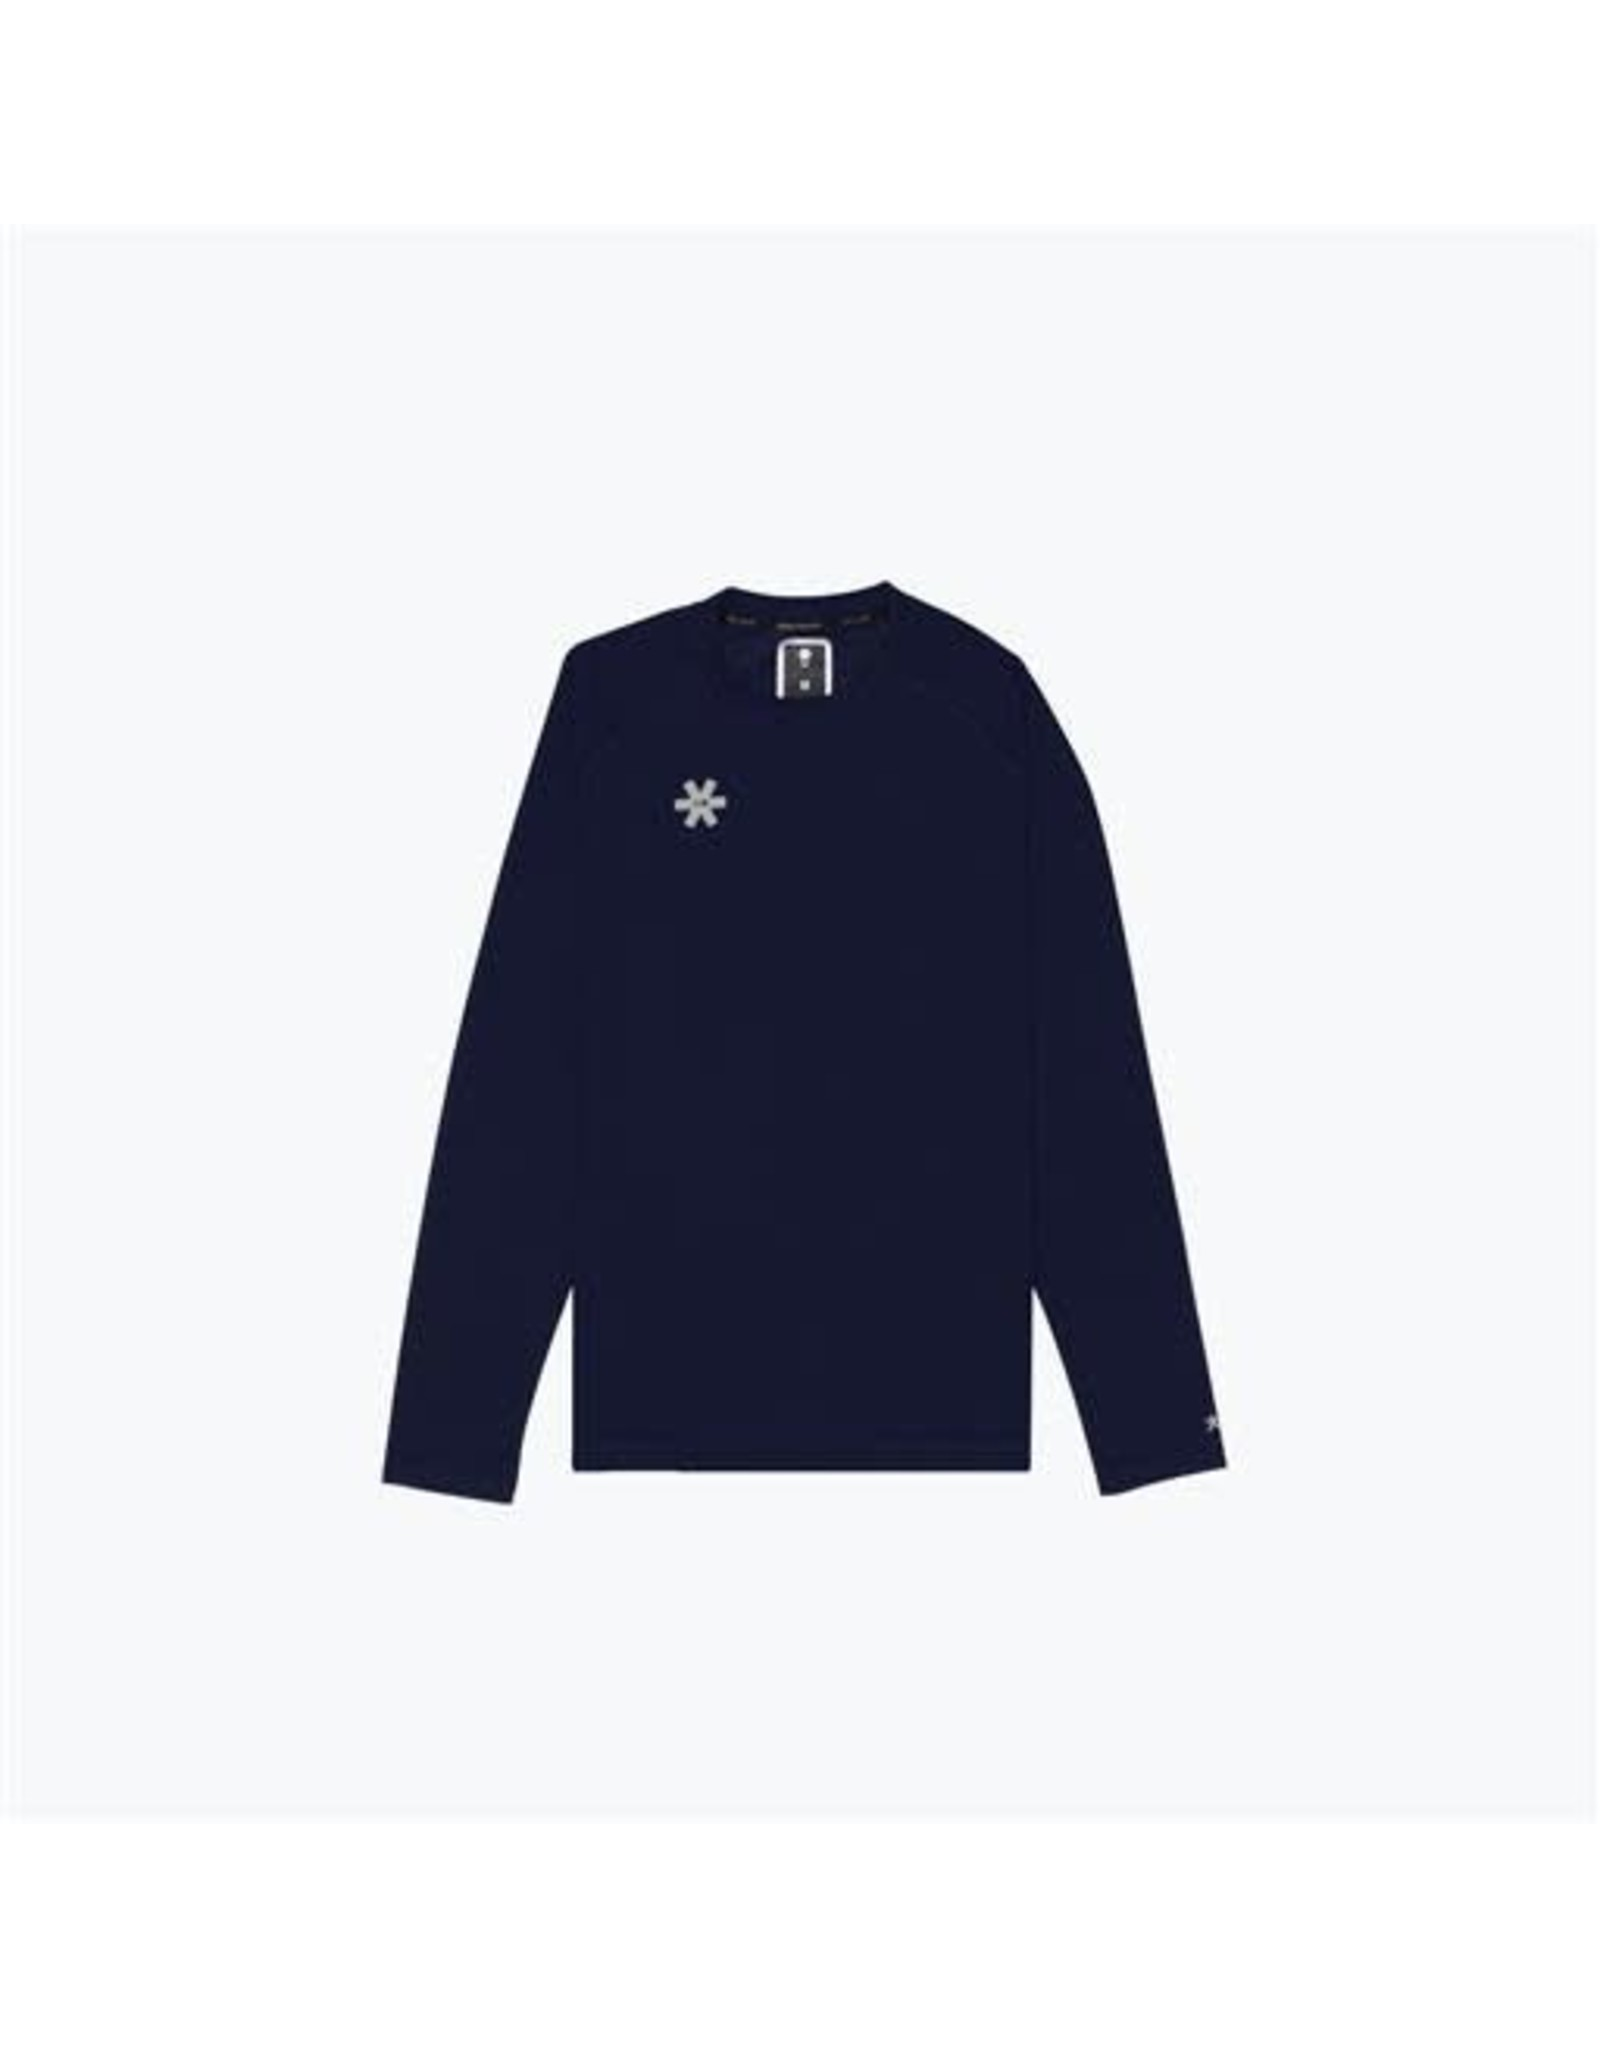 OSAKA OSAKA MEN TRAINING TEE LONG SLEEVE 18/19